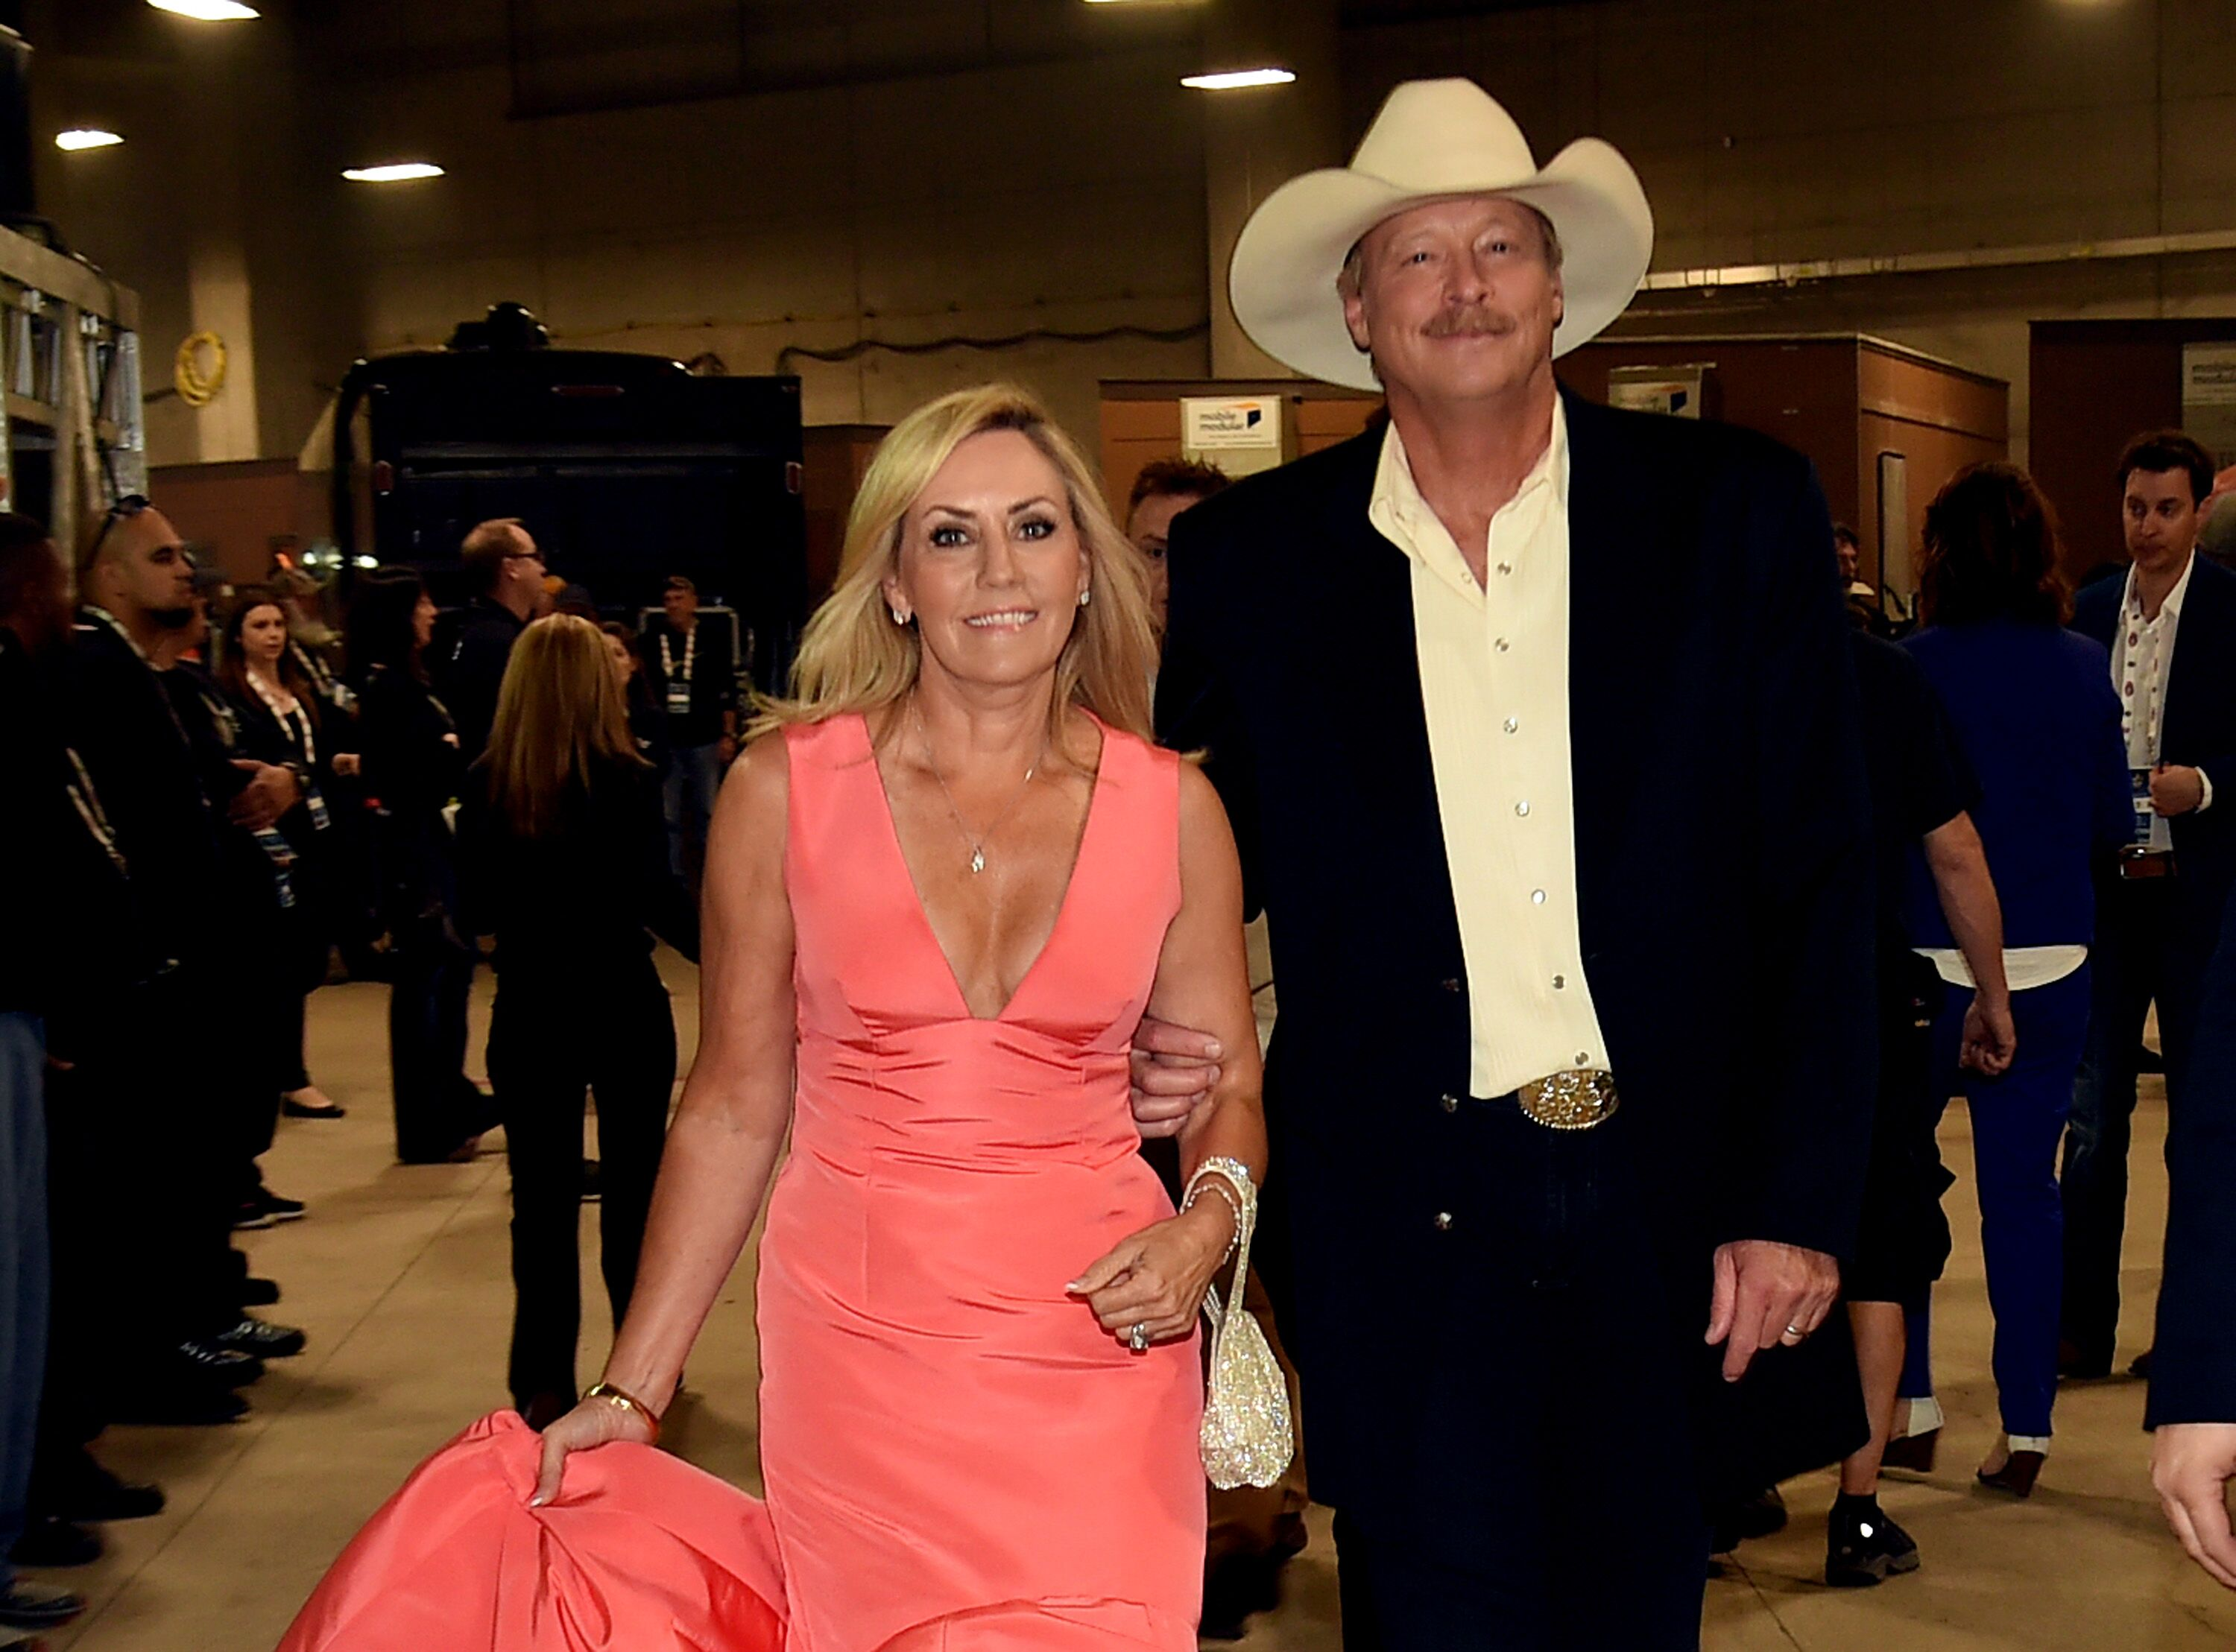 Alan Jackson and wife Denise Jackson attend the 50th Academy of Country Music Awards at AT&T Stadium on April 19, 2015 in Arlington, Texas. | Source: Getty Images